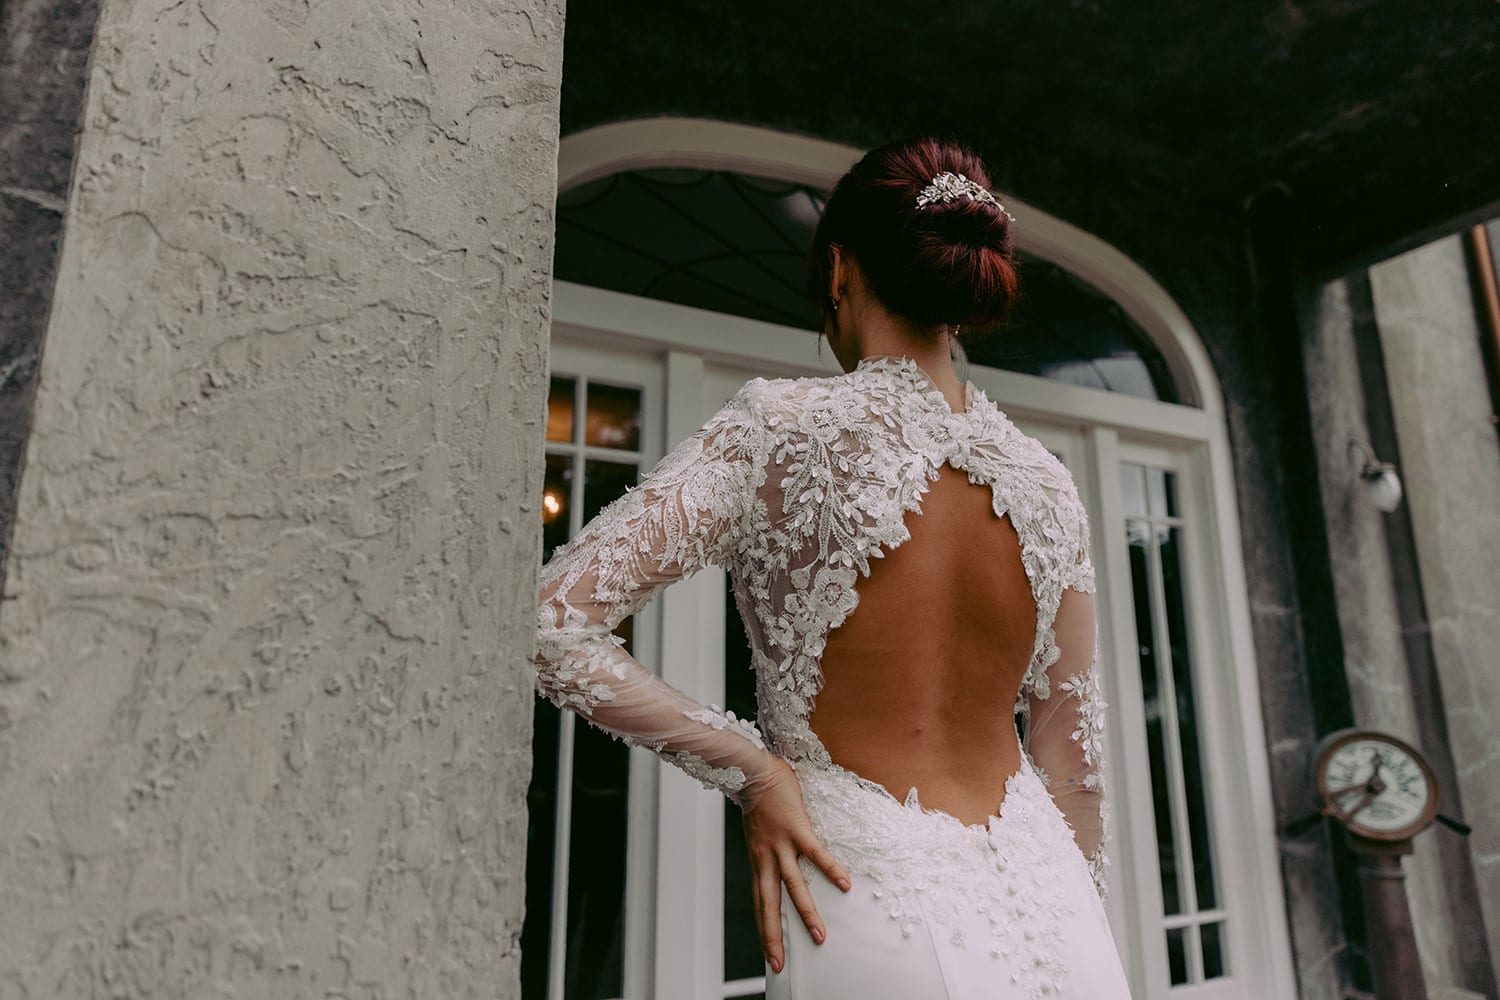 Moana Wedding gown from Vinka Design - Spectacular wedding dress perfect for the modern bride who still wants a classic spark! 3D lace embroidery complemented by a high neckline, fitted sleeves, and stunning low back into a flare train. Model wearing gown hand on hip showing top half of dress from the back.